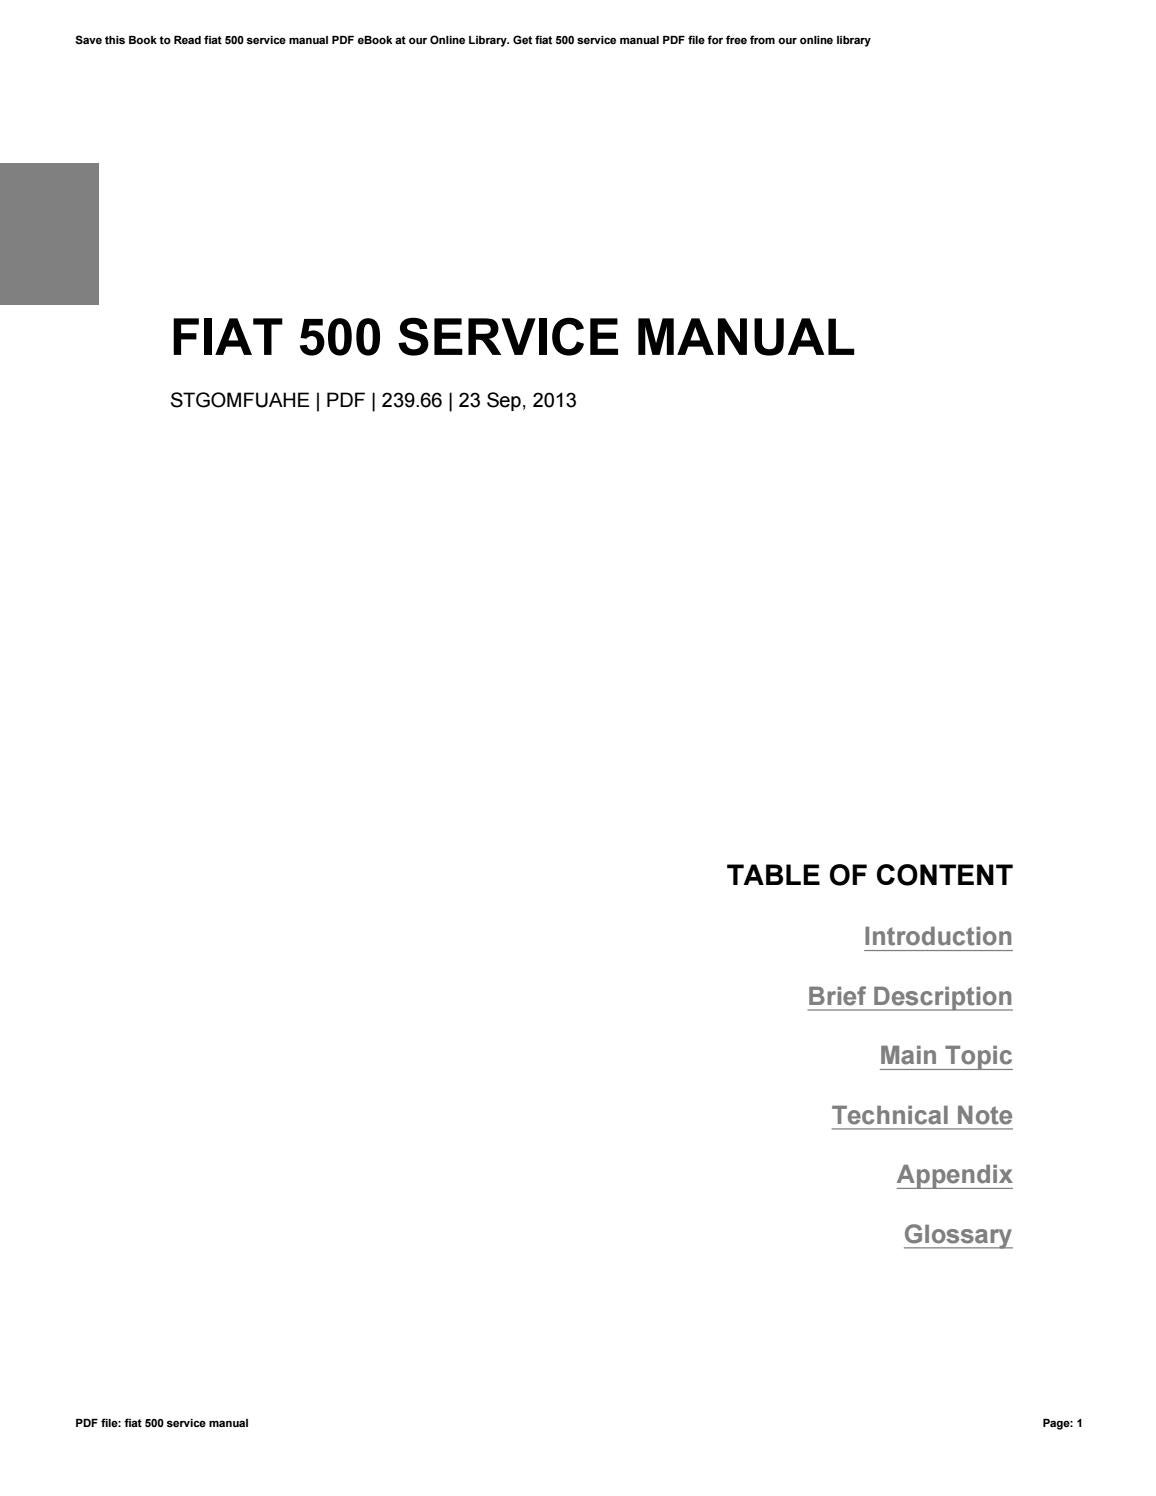 fiat 500 sport owners manual